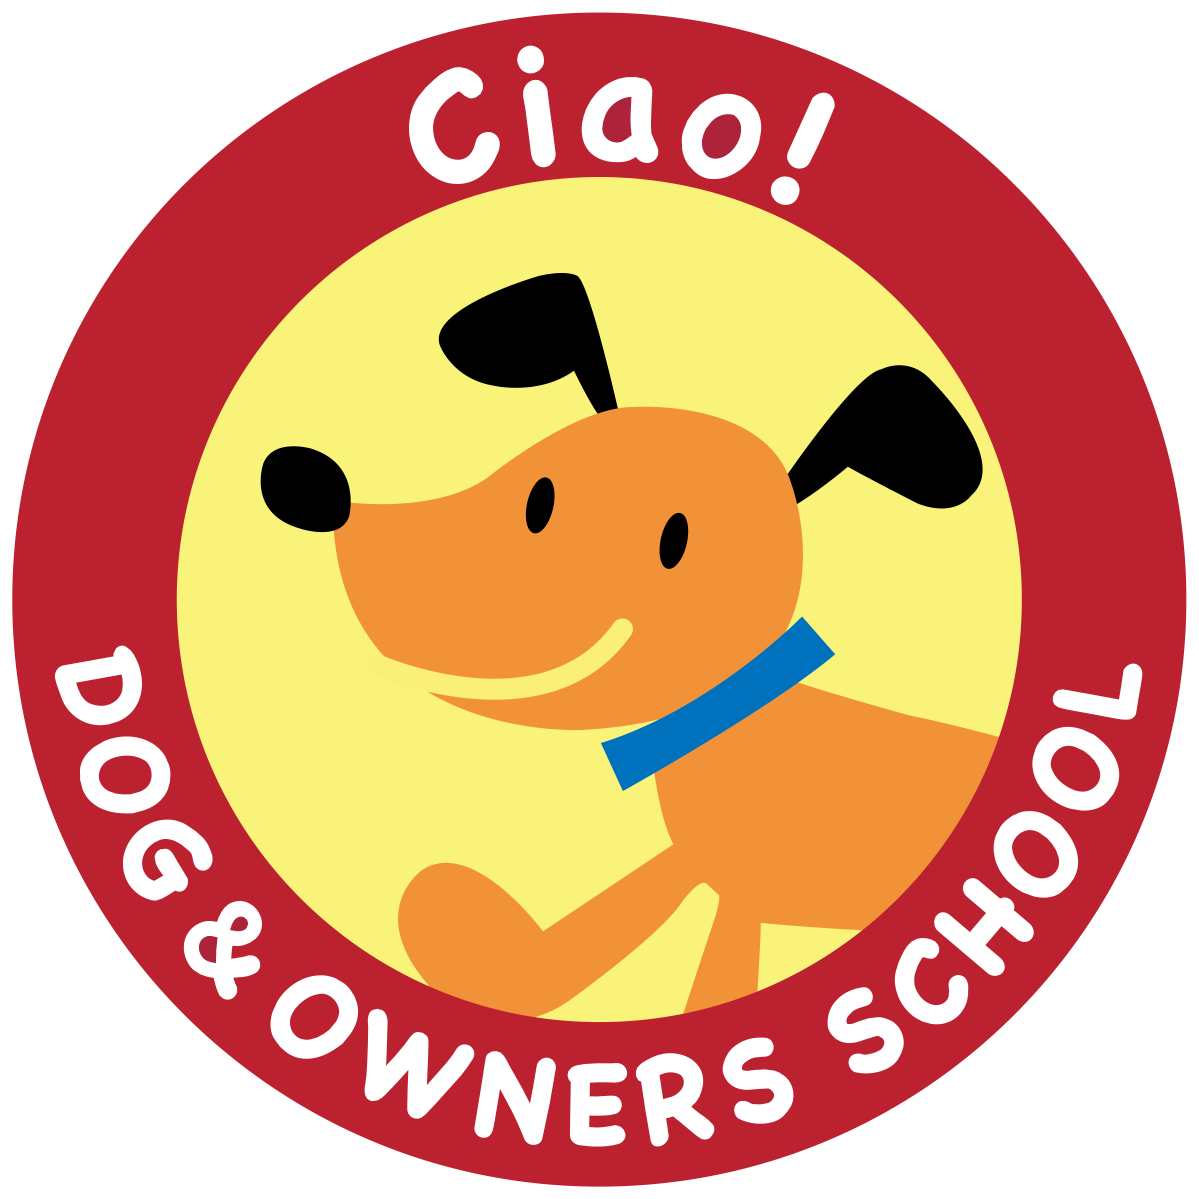 Ciao! Dog & Owners School Suginami